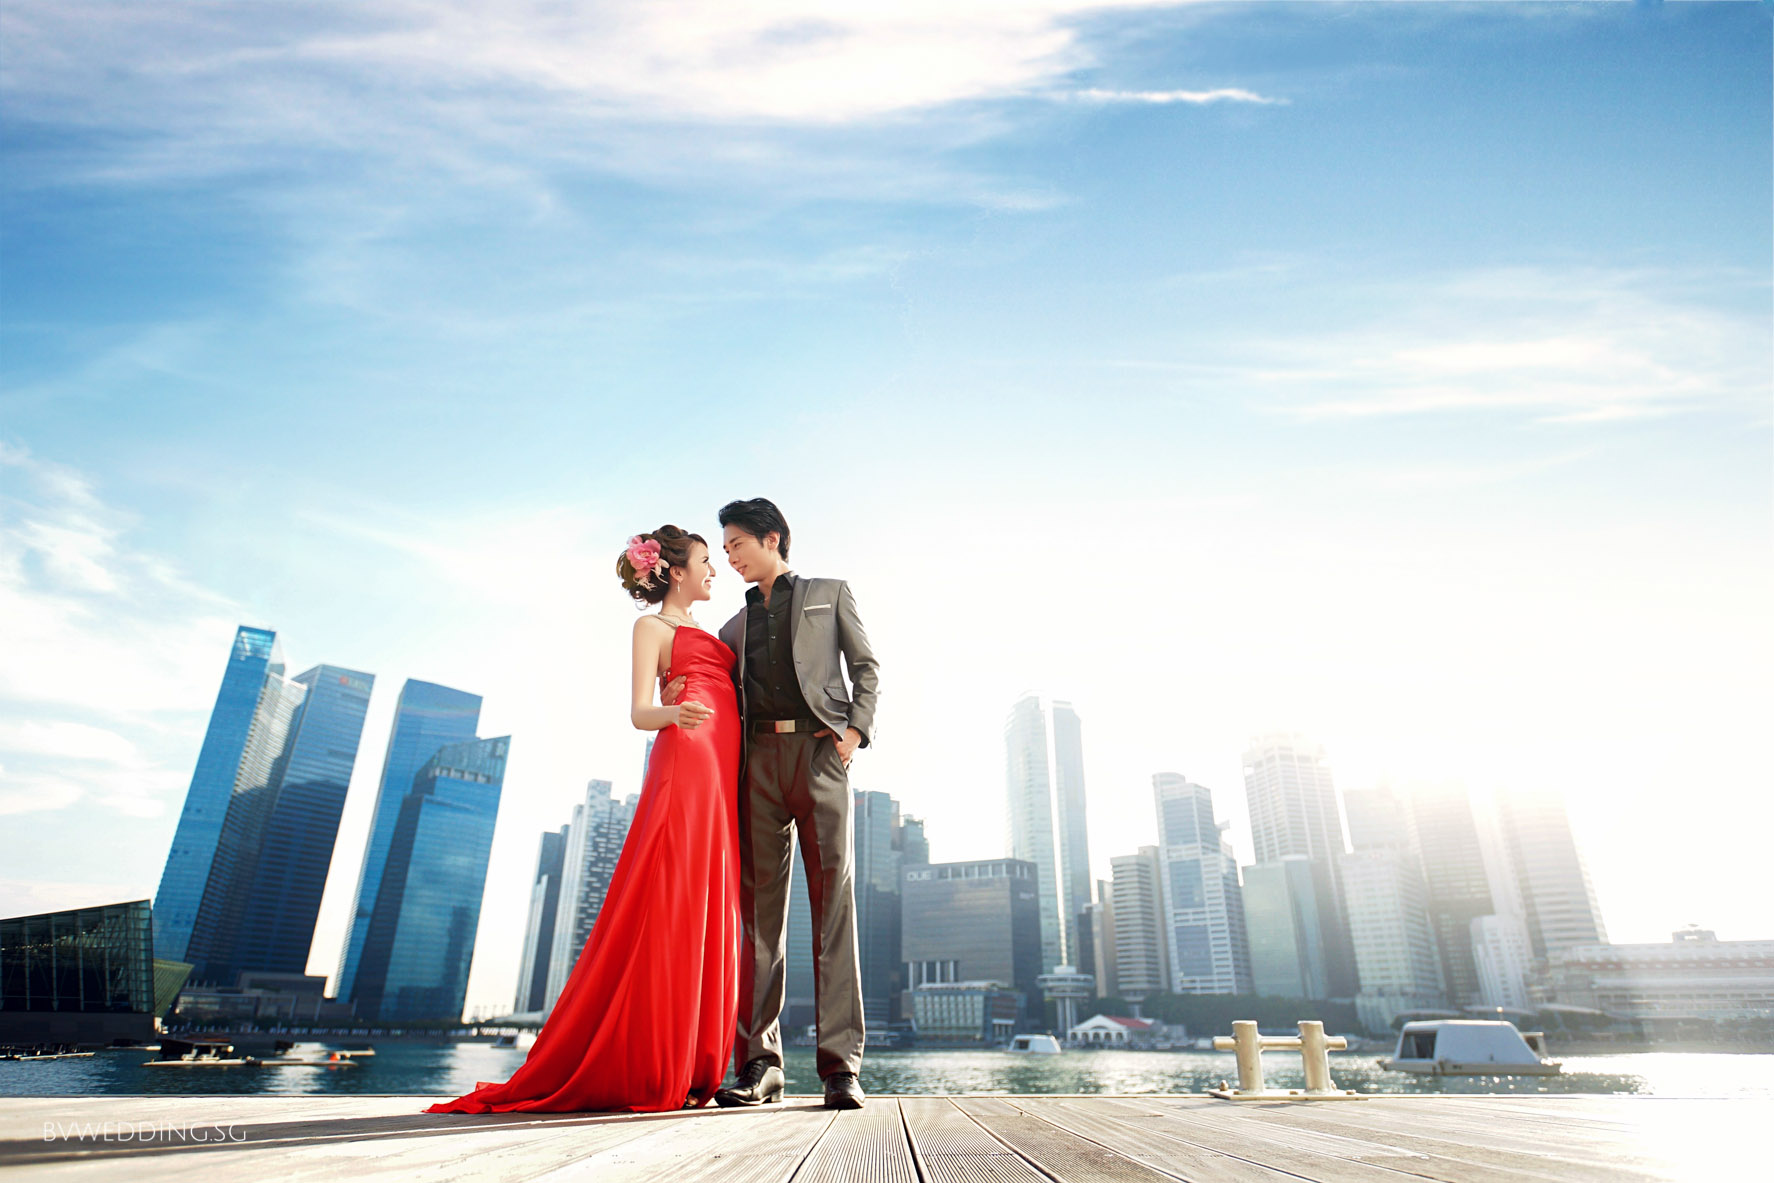 Pre-wedding Photoshoot at LV-MBS